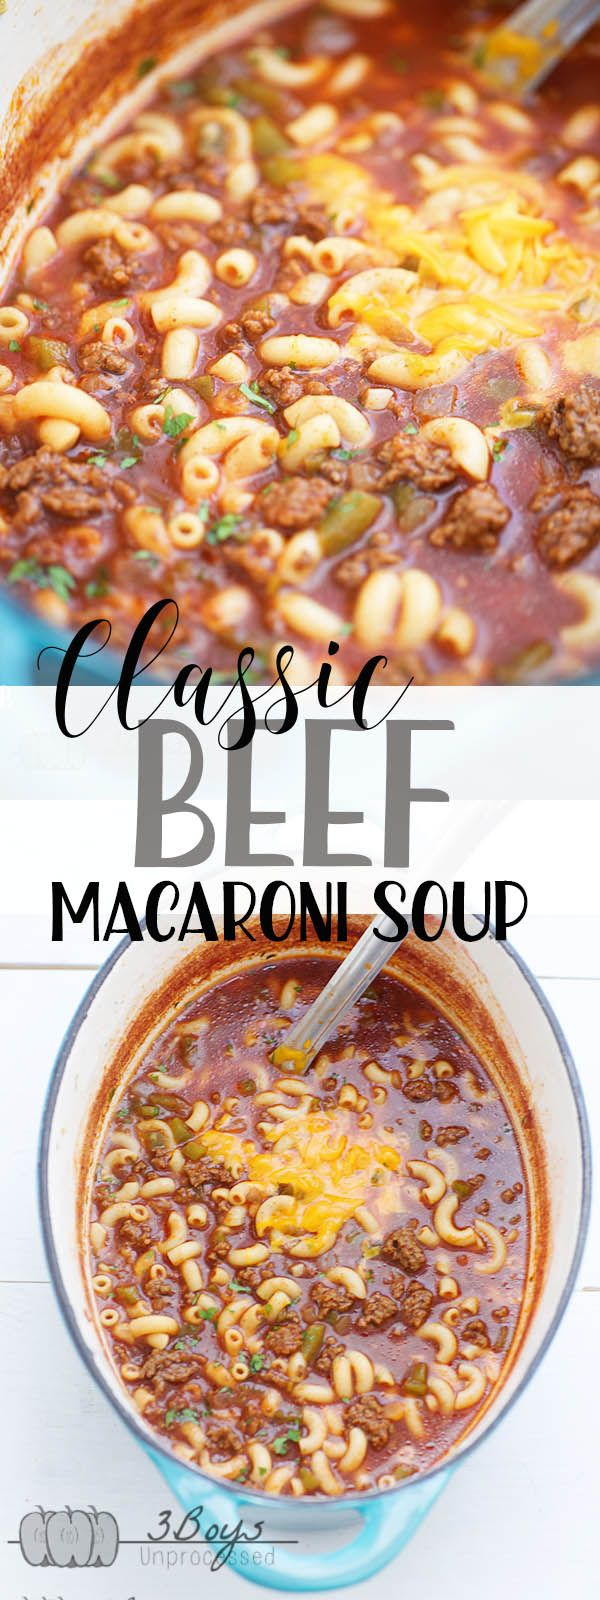 Classic Beef Macaroni Soup || One big pot of comfort food! Ready in just a little over 30 minutes, so it is perfect for any day of the week. Leftovers that taste amazing are a huge plus! || www.3boysunprocessed.com